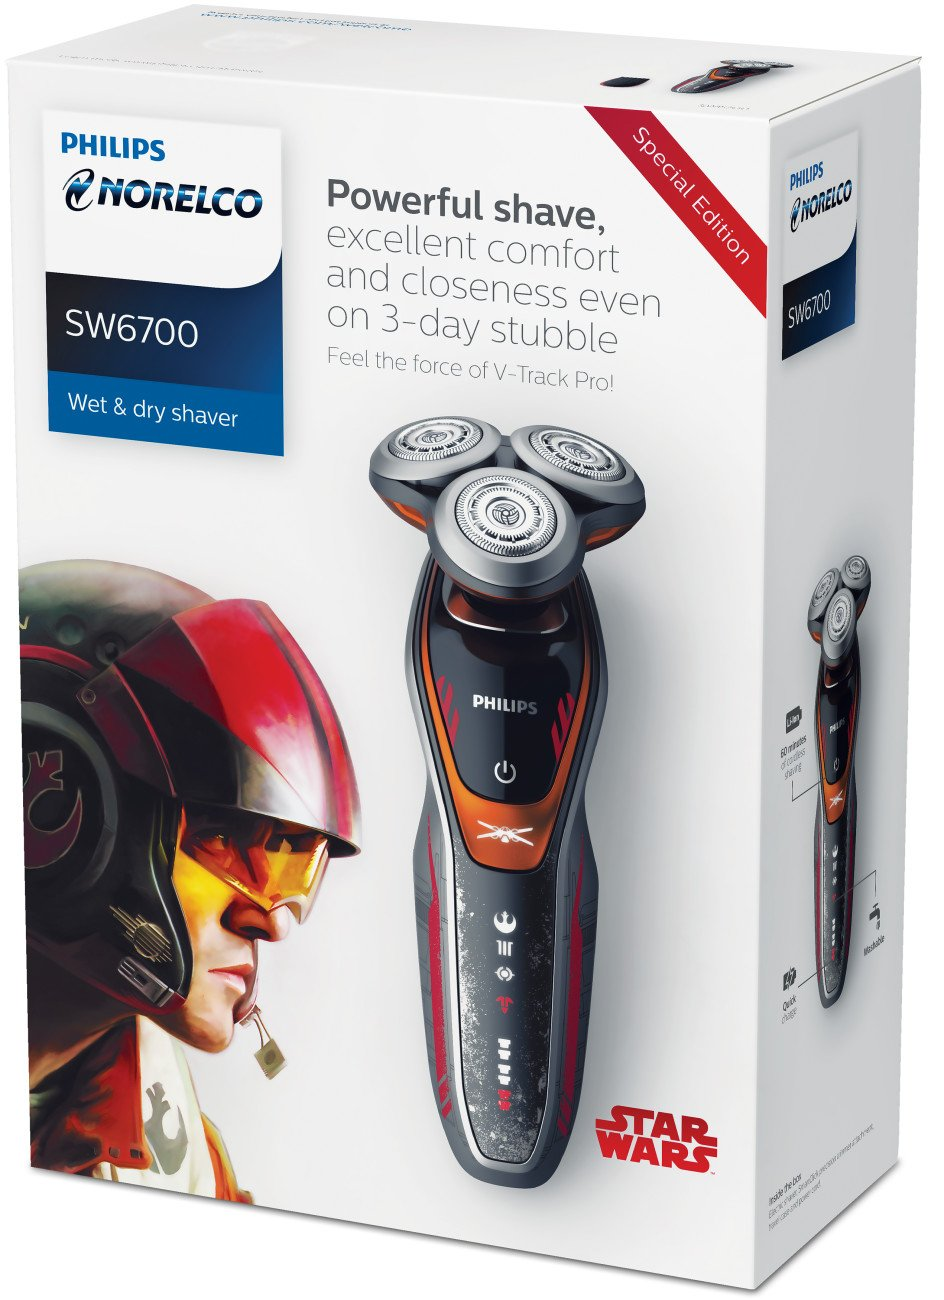 Philips Norelco Special Edition Star Wars Poe Wet & Dry Electric Shaver, SW6700/91, with Turbo+ mode and Precision Trimmer by Philips Norelco (Image #5)